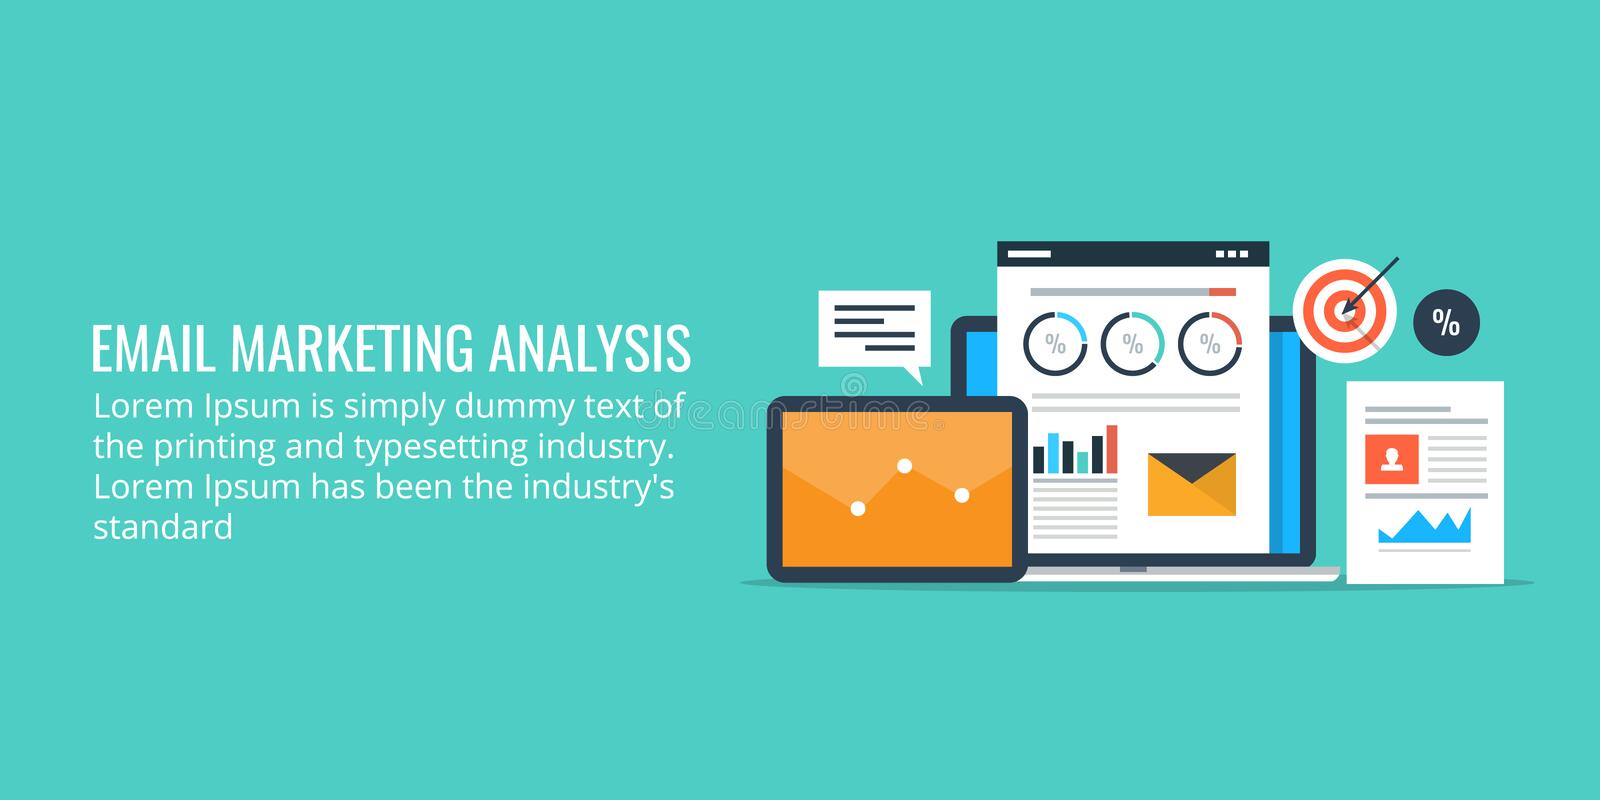 Data analysis of an email marketing campaign - email marketing analytics. Flat design marketing banner. royalty free illustration